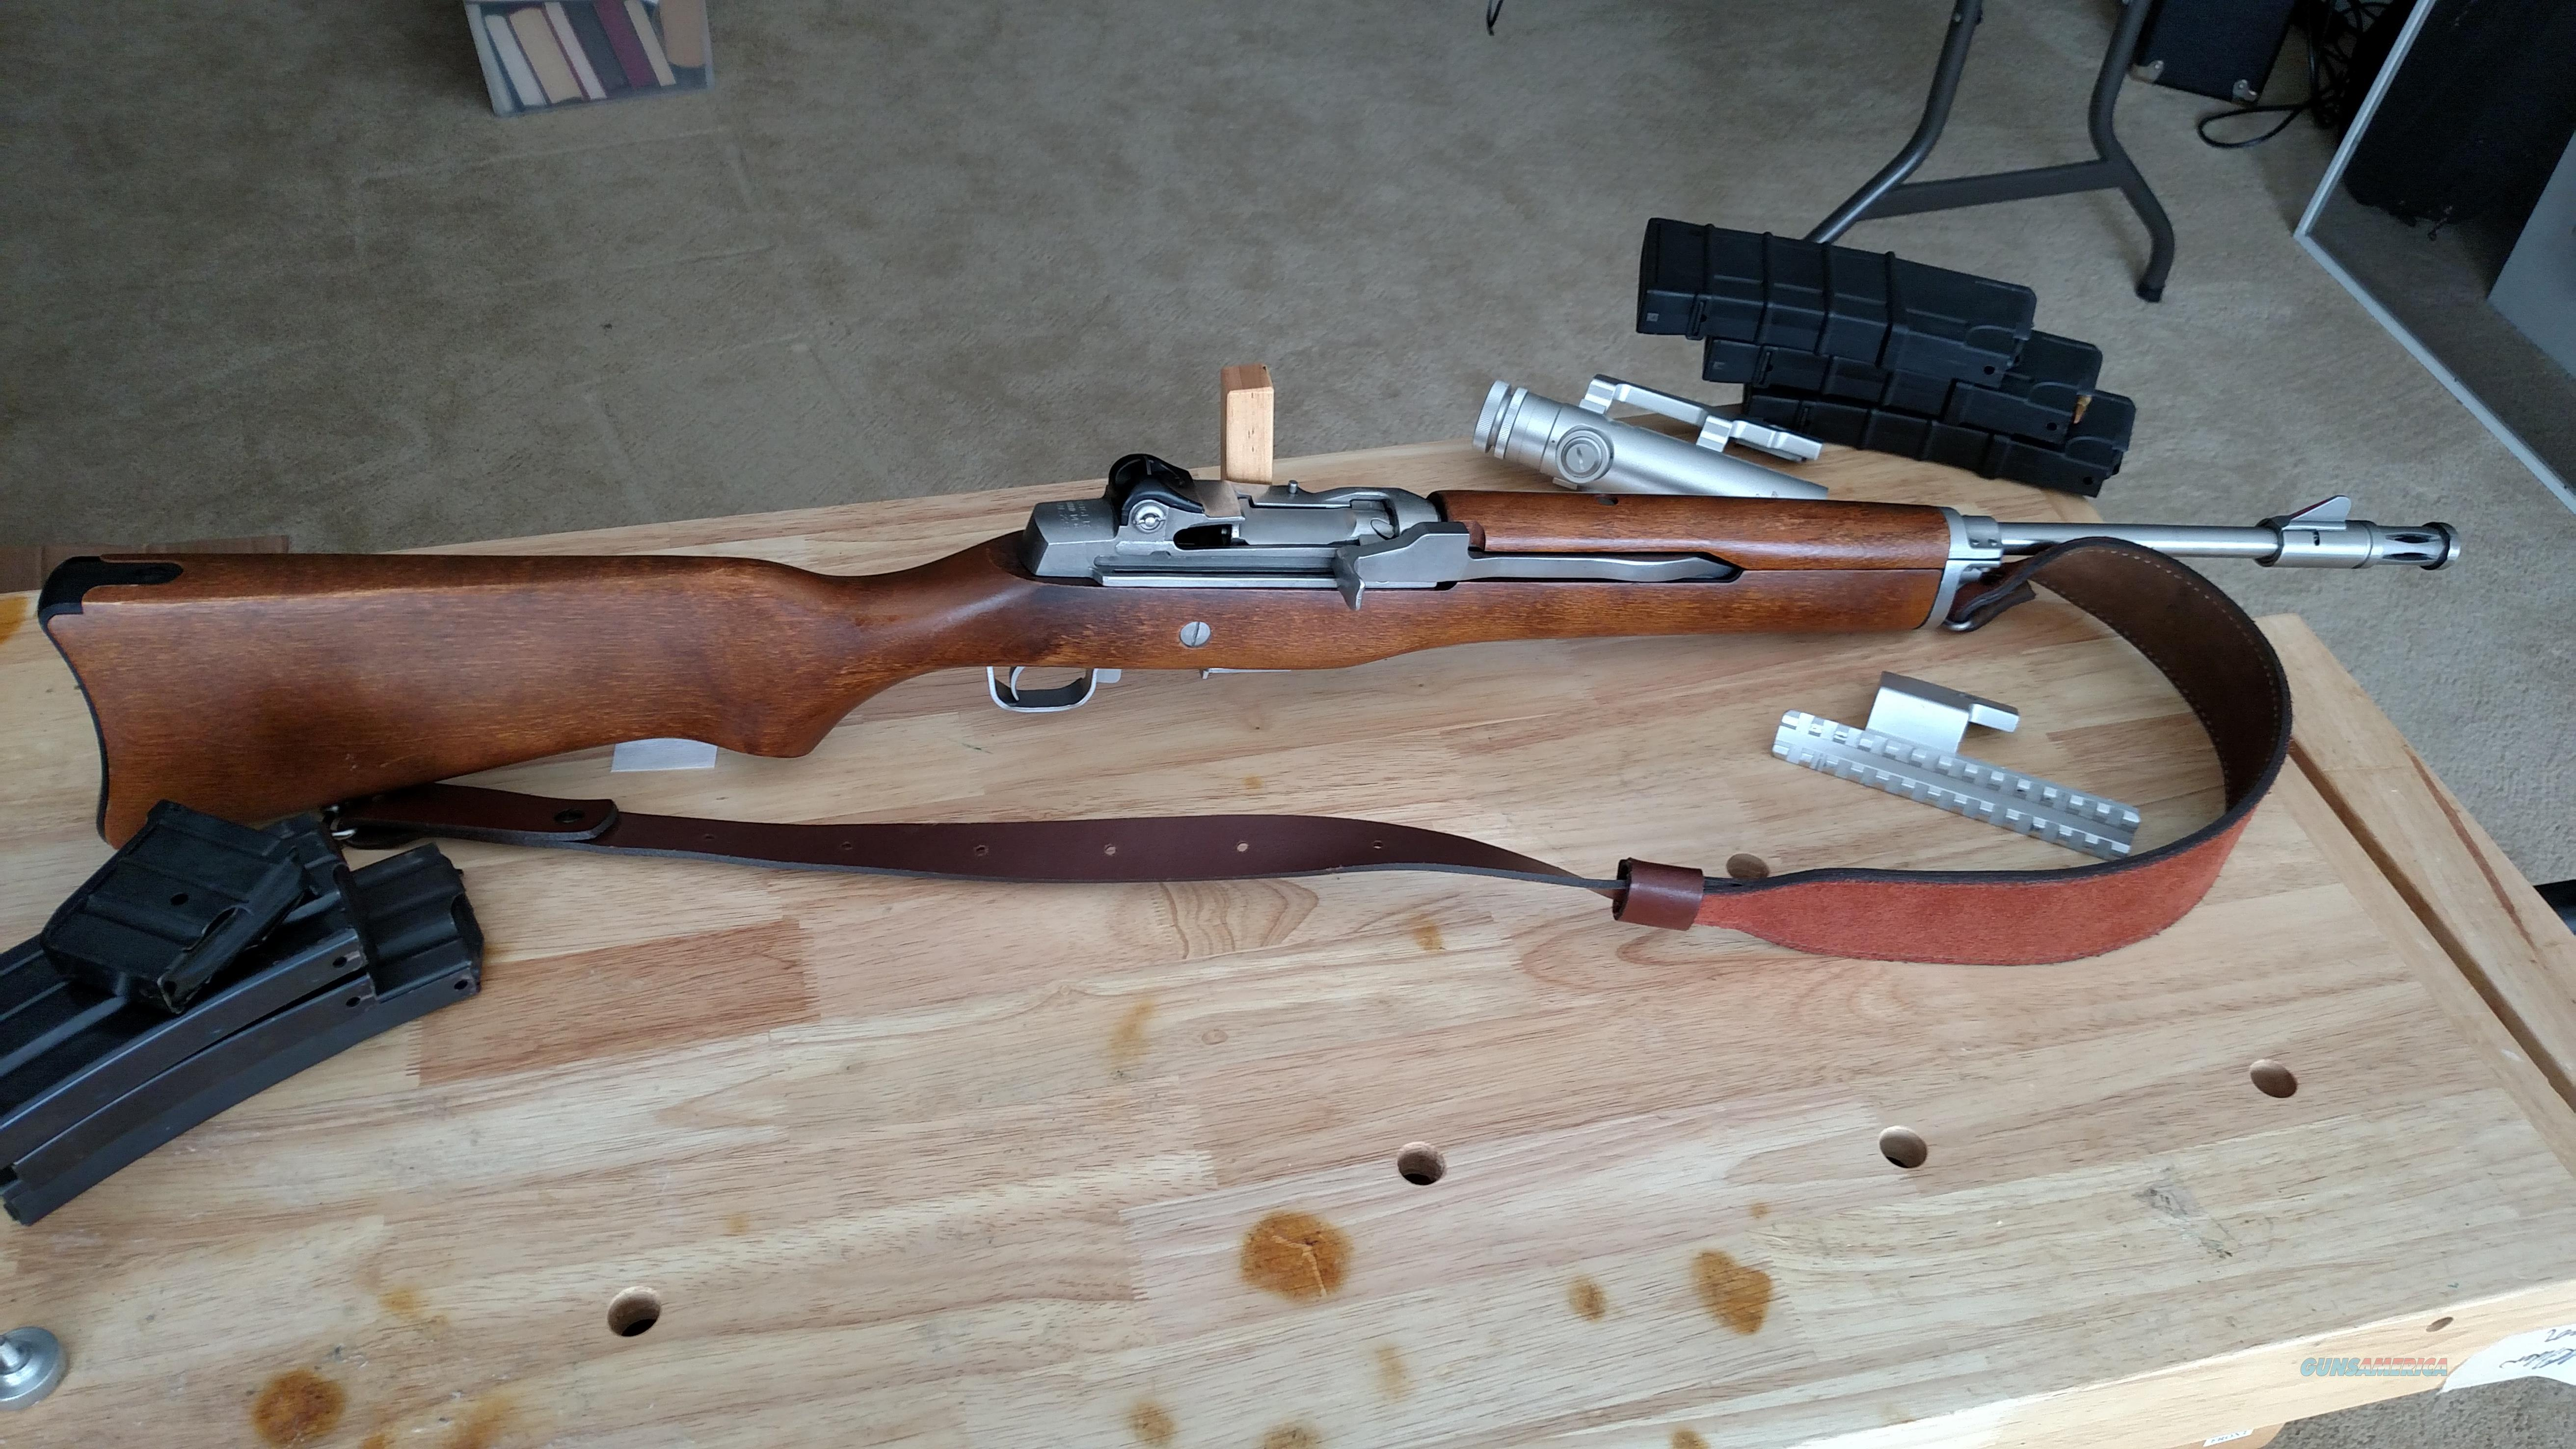 Ruger Mini 14 rifle  Guns > Rifles > Ruger Rifles > Mini-14 Type